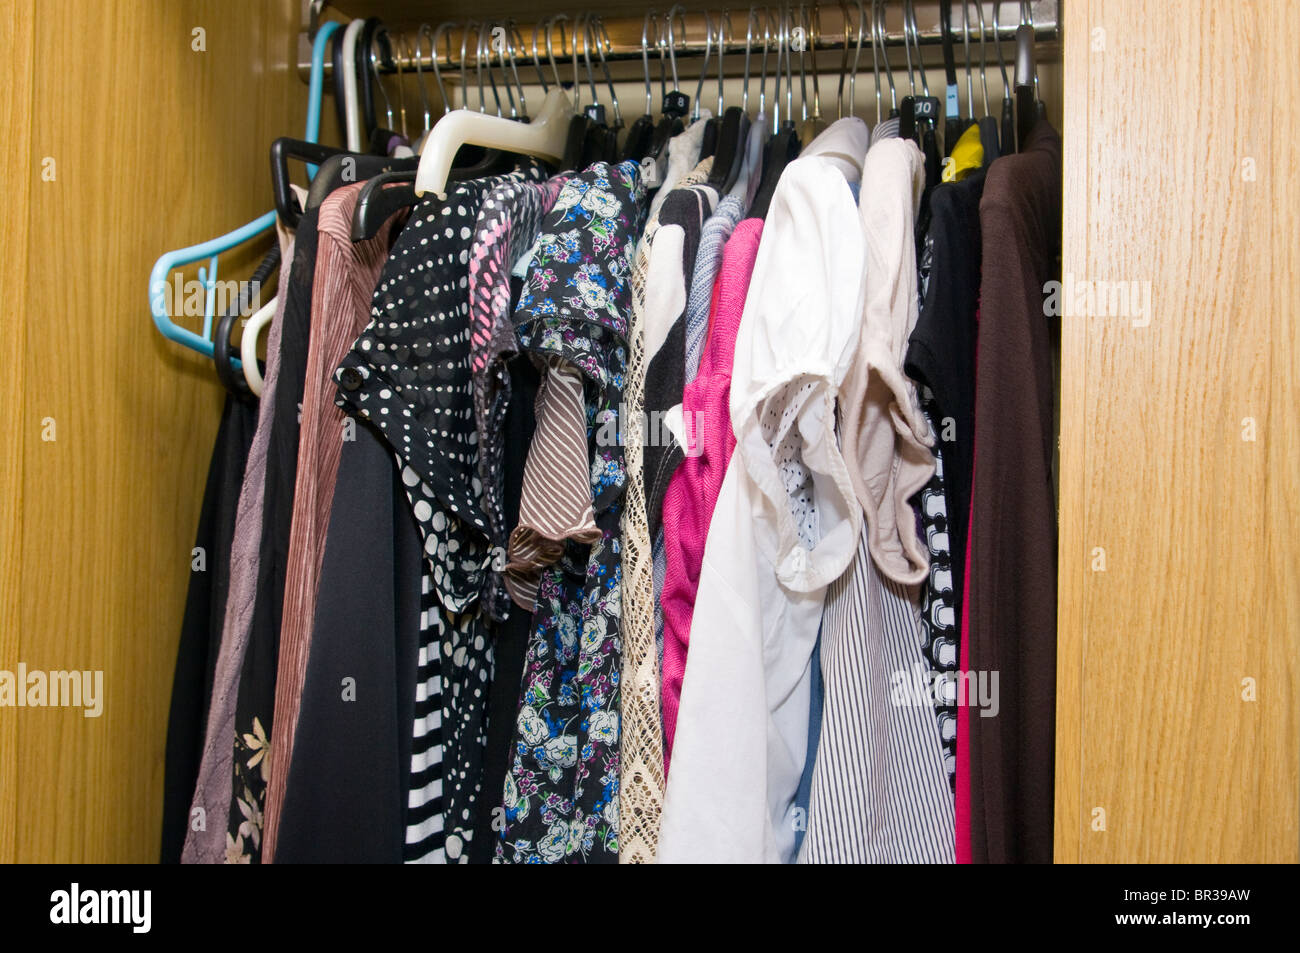 Womans Clothes On Hangers In An Open Wardrobe - Stock Image